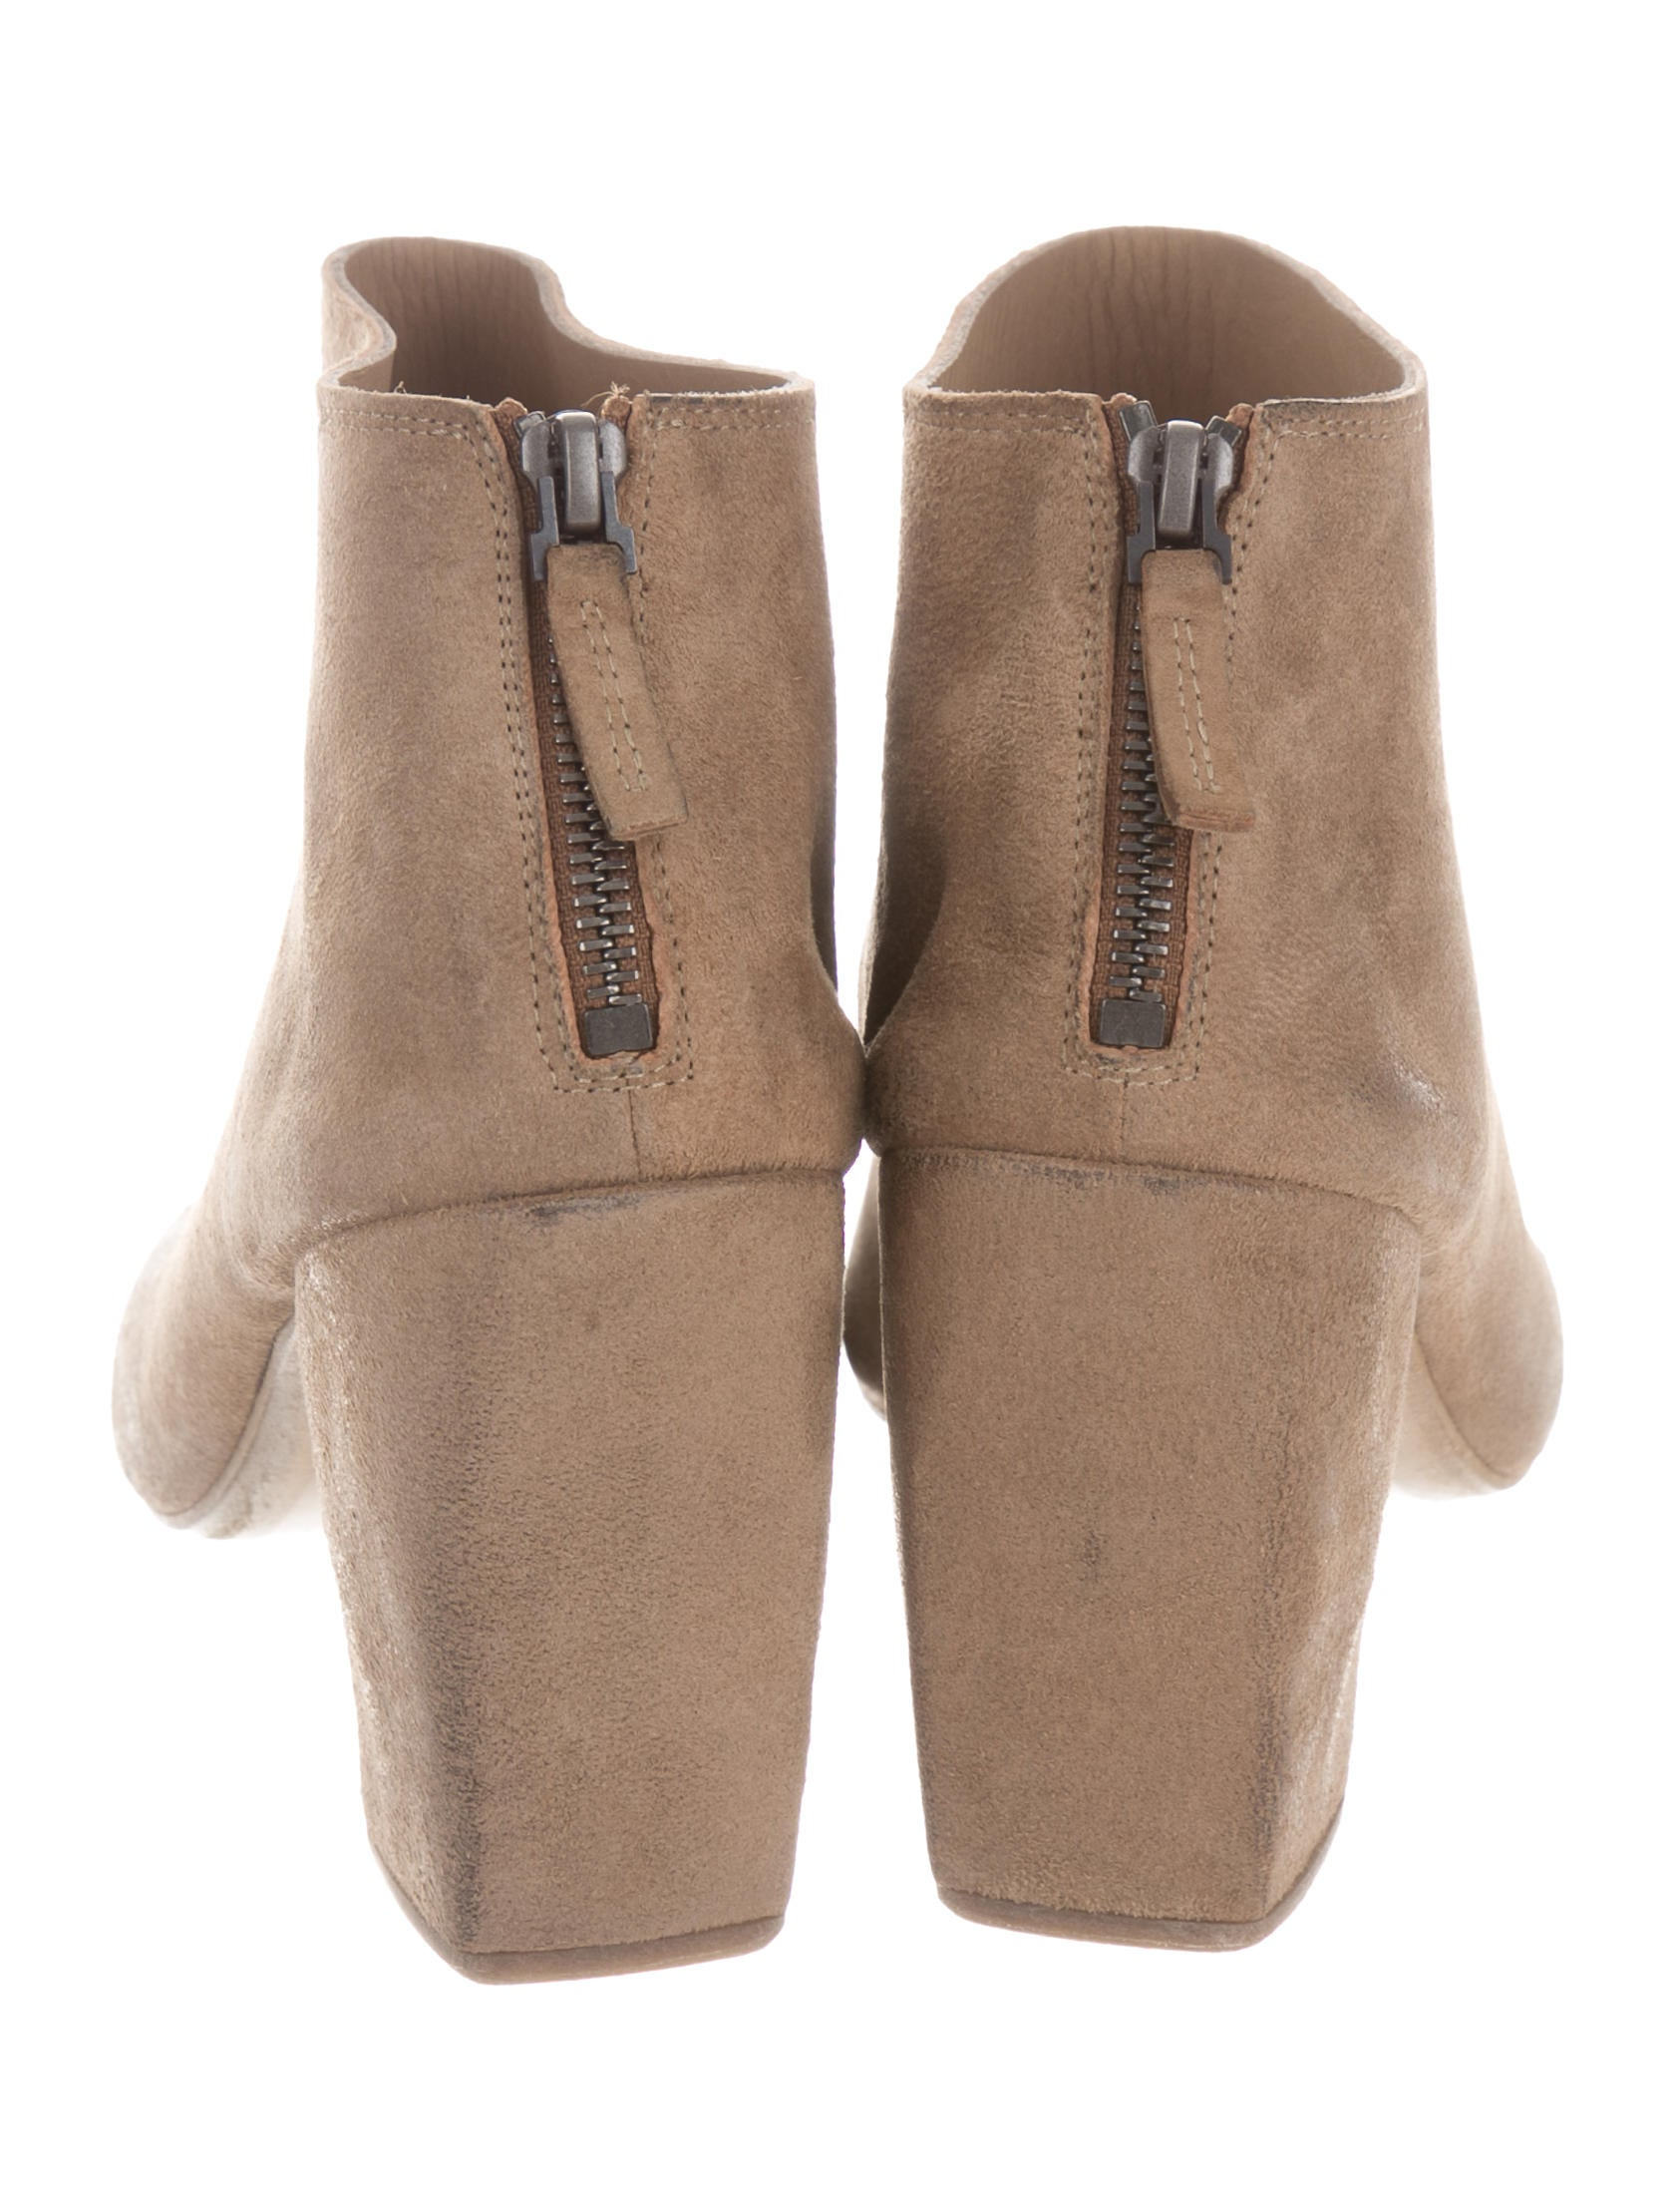 outlet best sale Marsèll Mostro Peep-Toe Booties w/ Tags buy cheap with mastercard free shipping order footlocker for sale amazing price UJlM6jrYF6